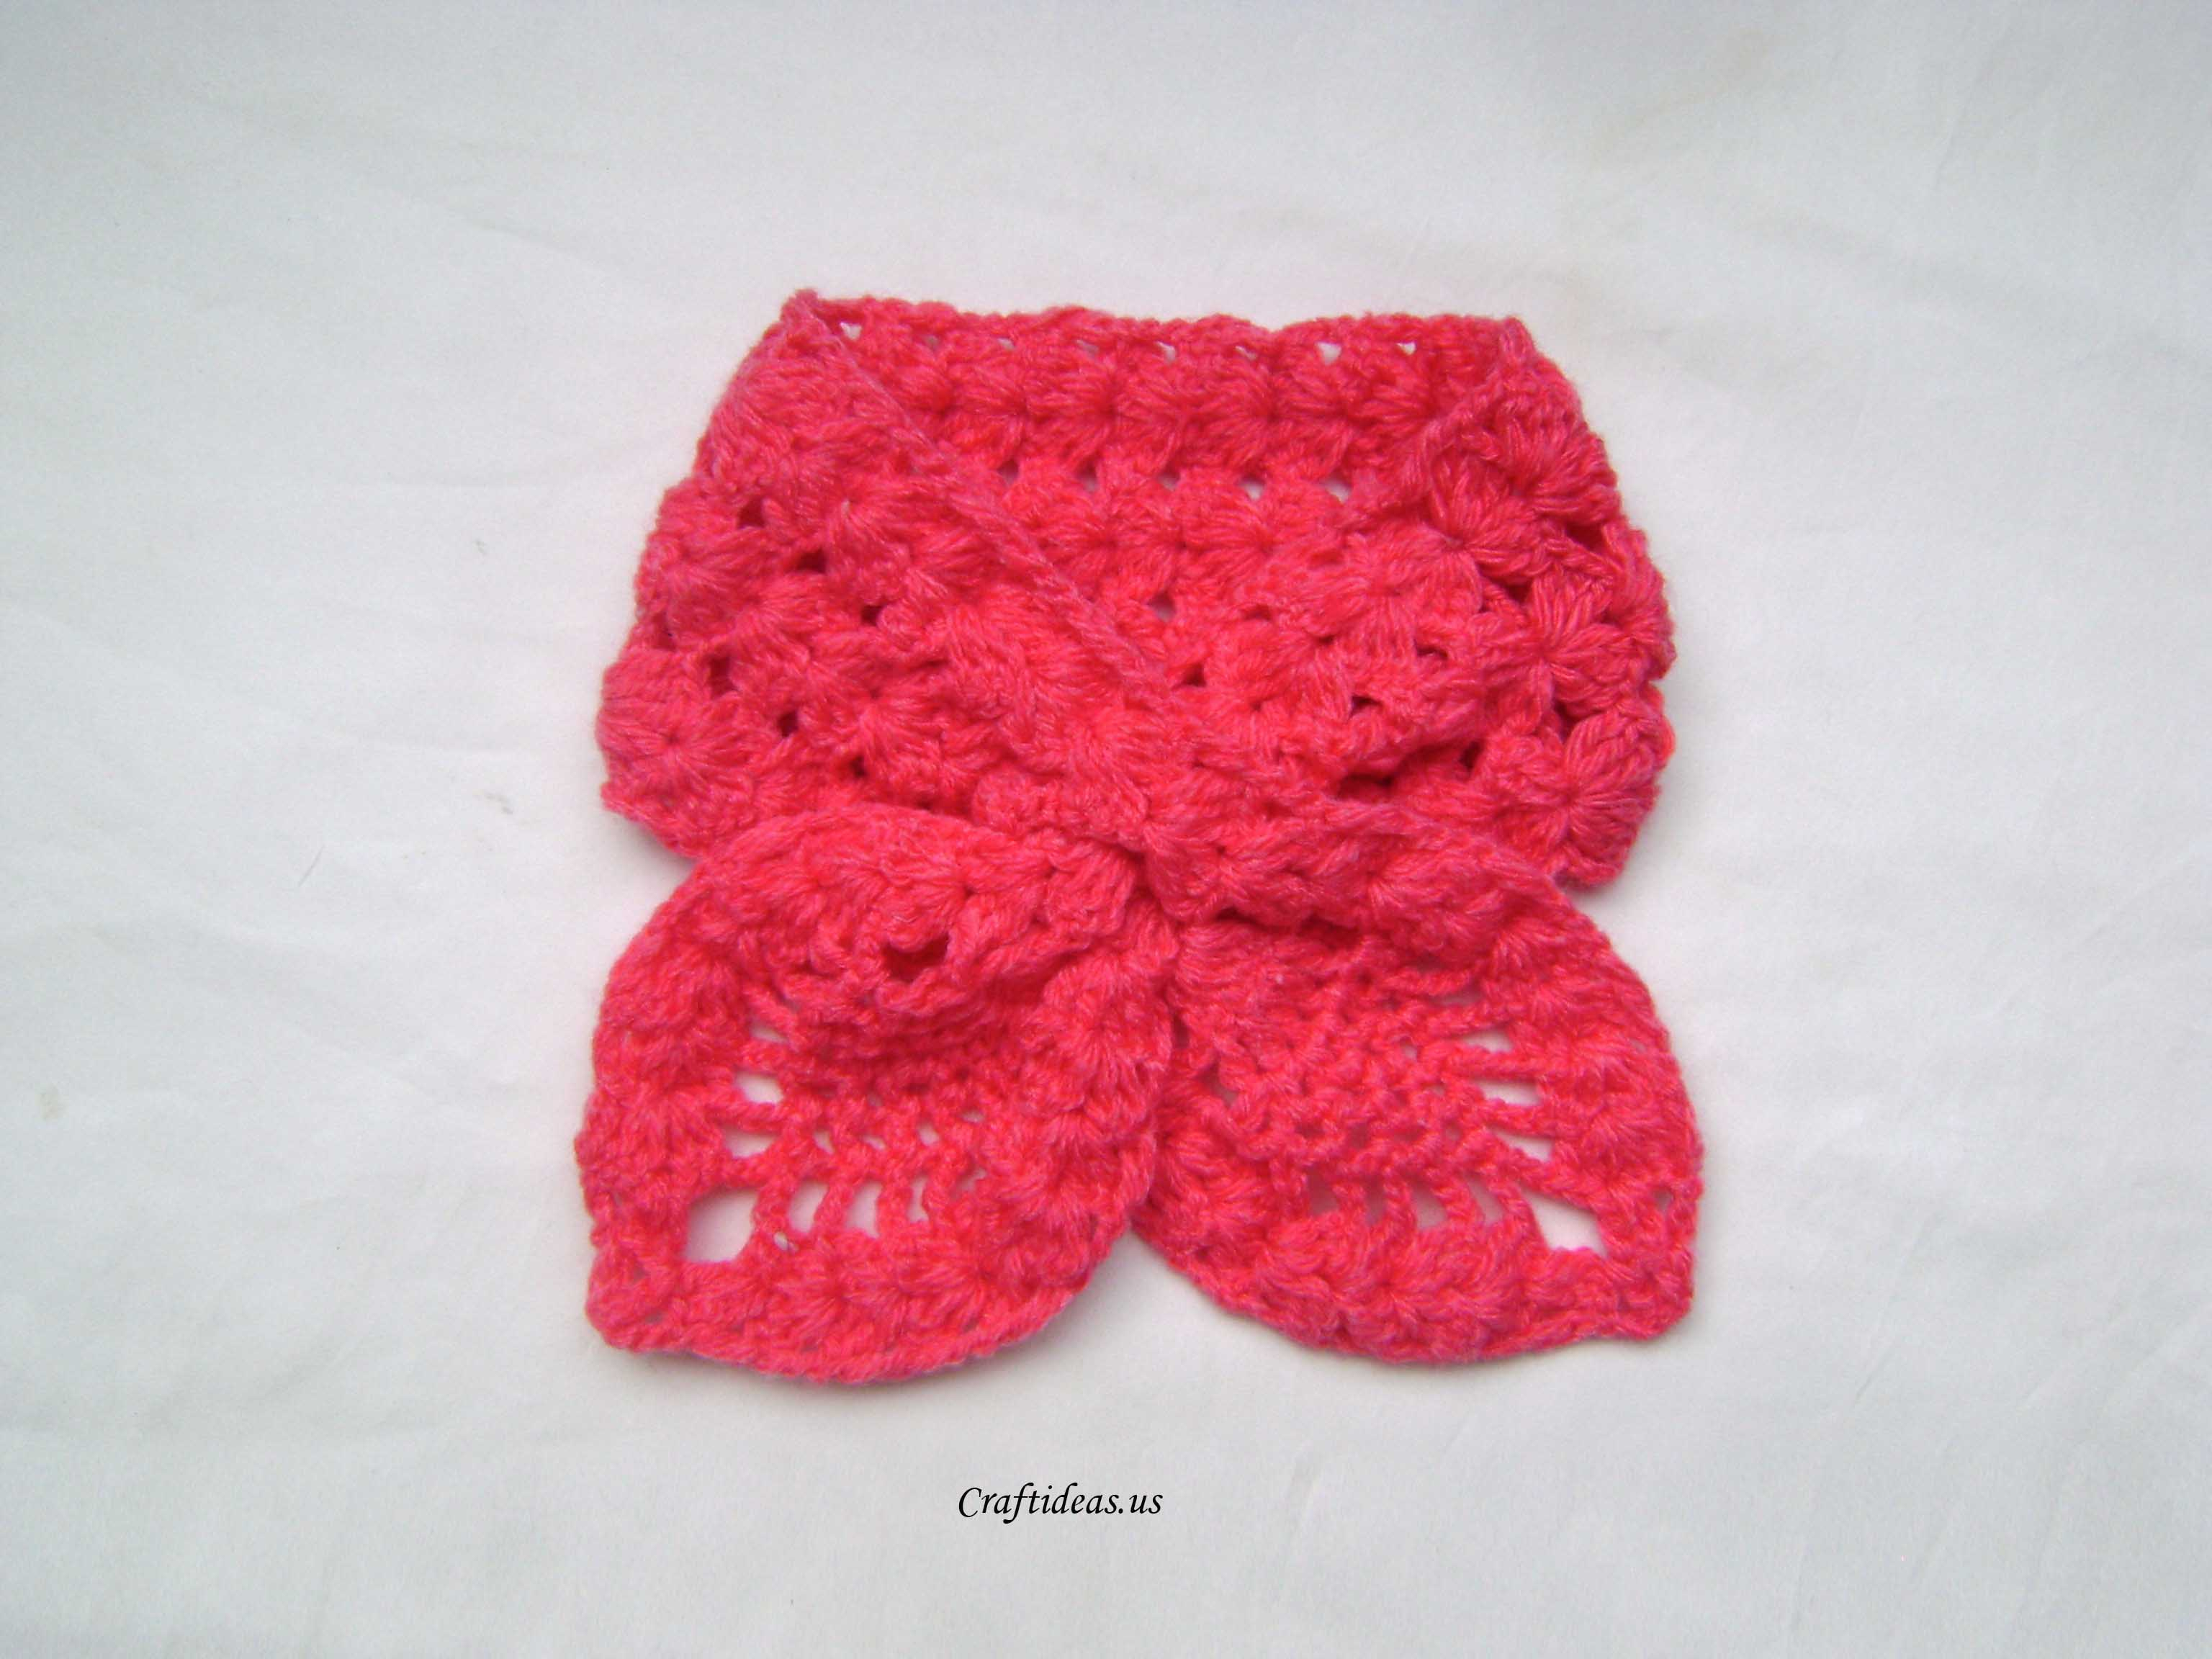 Crocheting Tutorials : Crochet lotus scarf tutorial - Craft Ideas